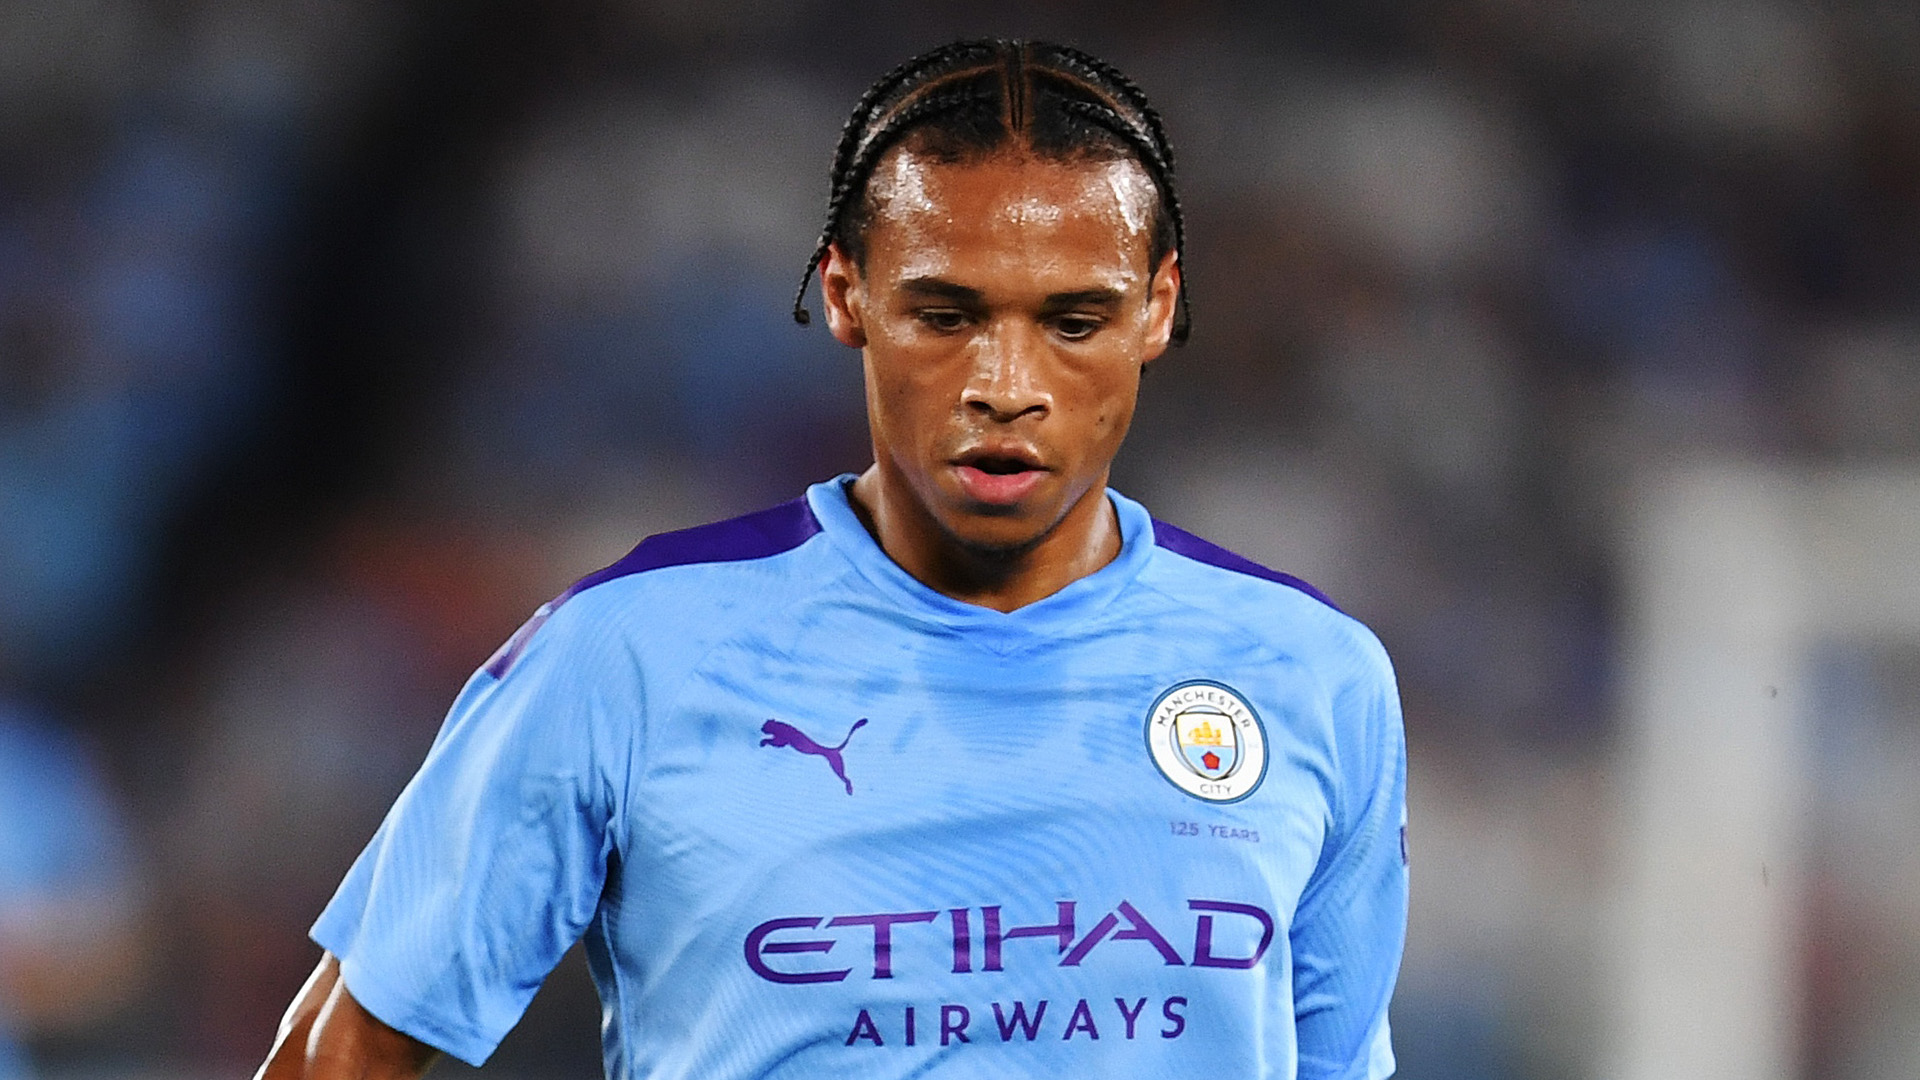 Man City transfer targets: Dias, Chilwell, Lautaro & players linked with the club